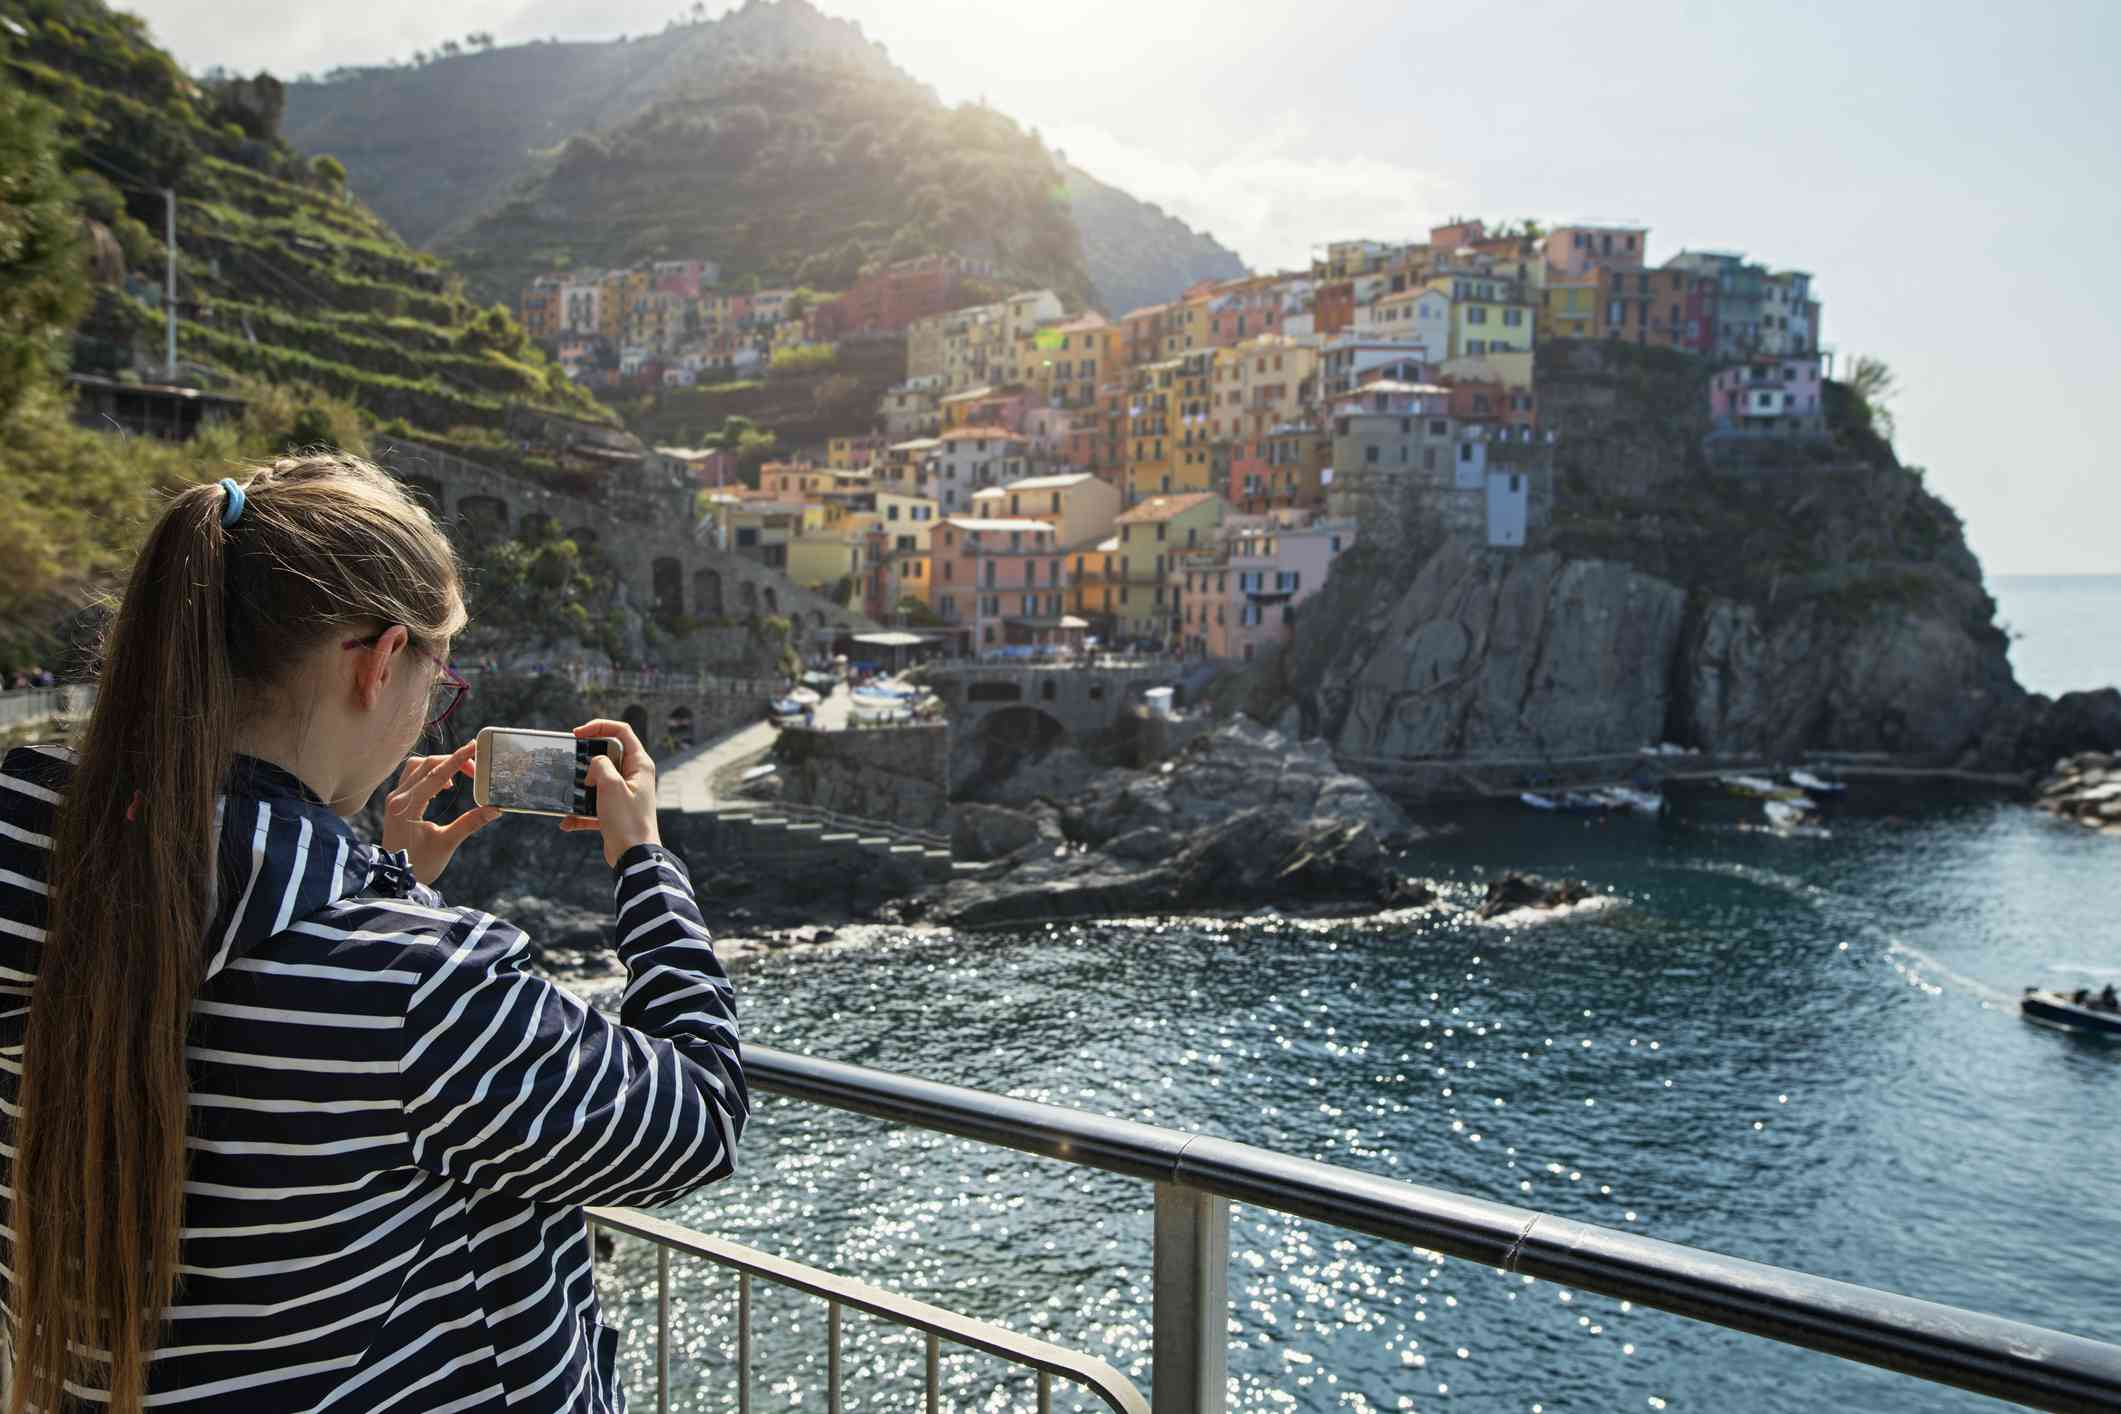 Young woman taking a picture at the Manarola Scenic Viewpoint